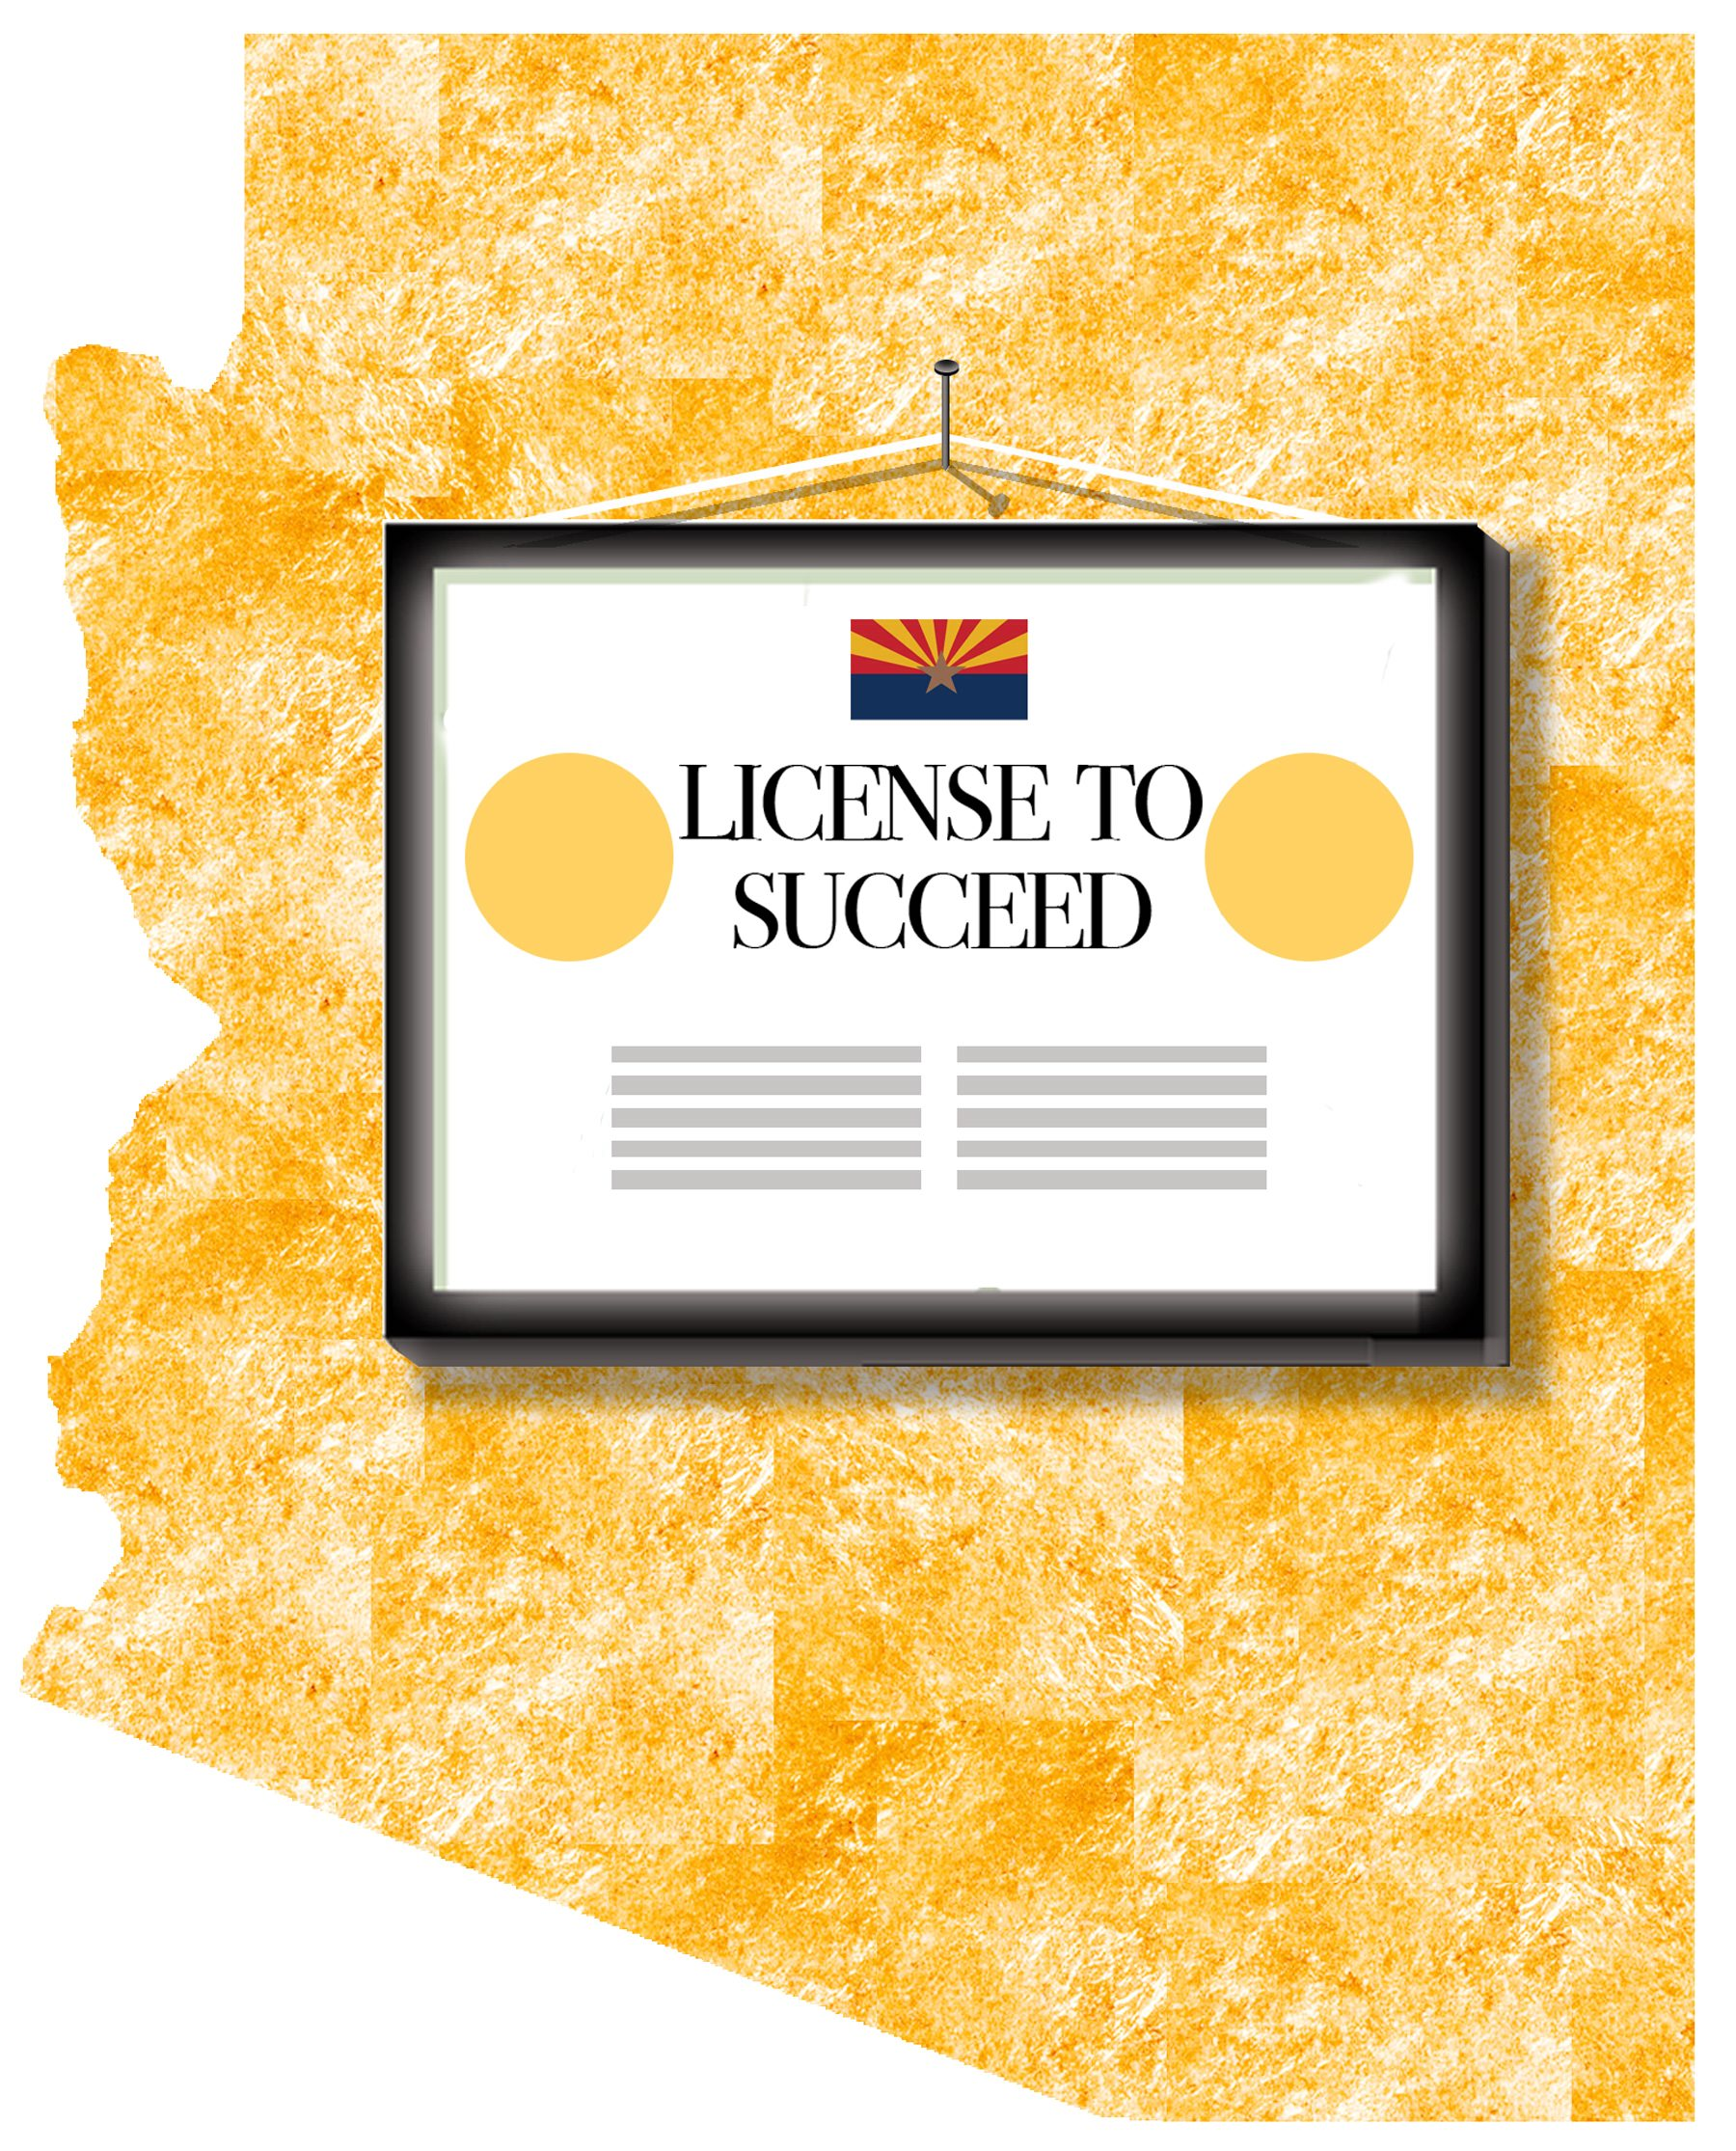 Arizona universal recognition delivers occupational licensing reform